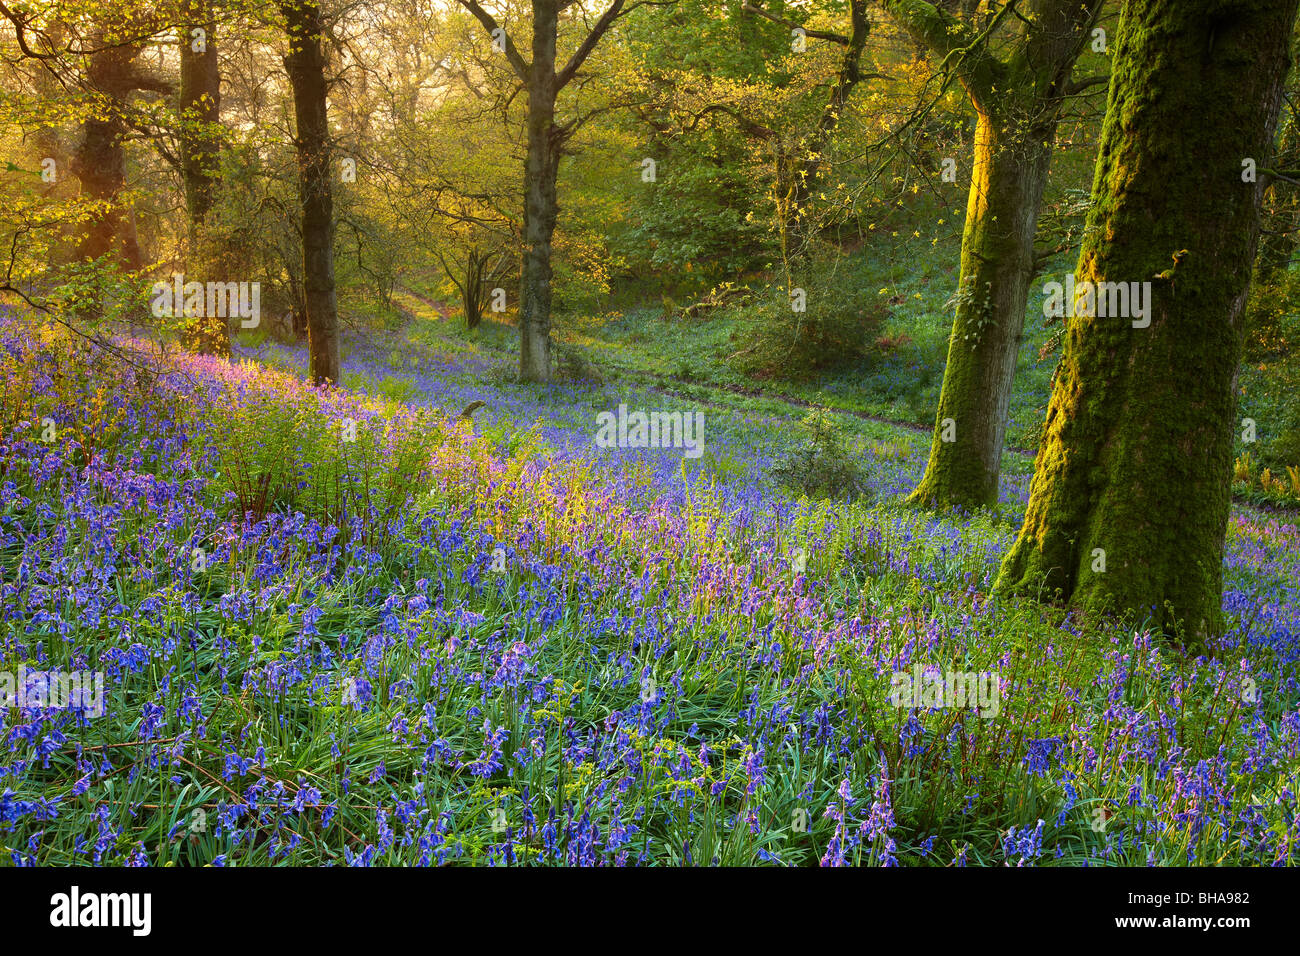 dawn in the bluebell woods at Batcombe, Dorset, England, UK - Stock Image